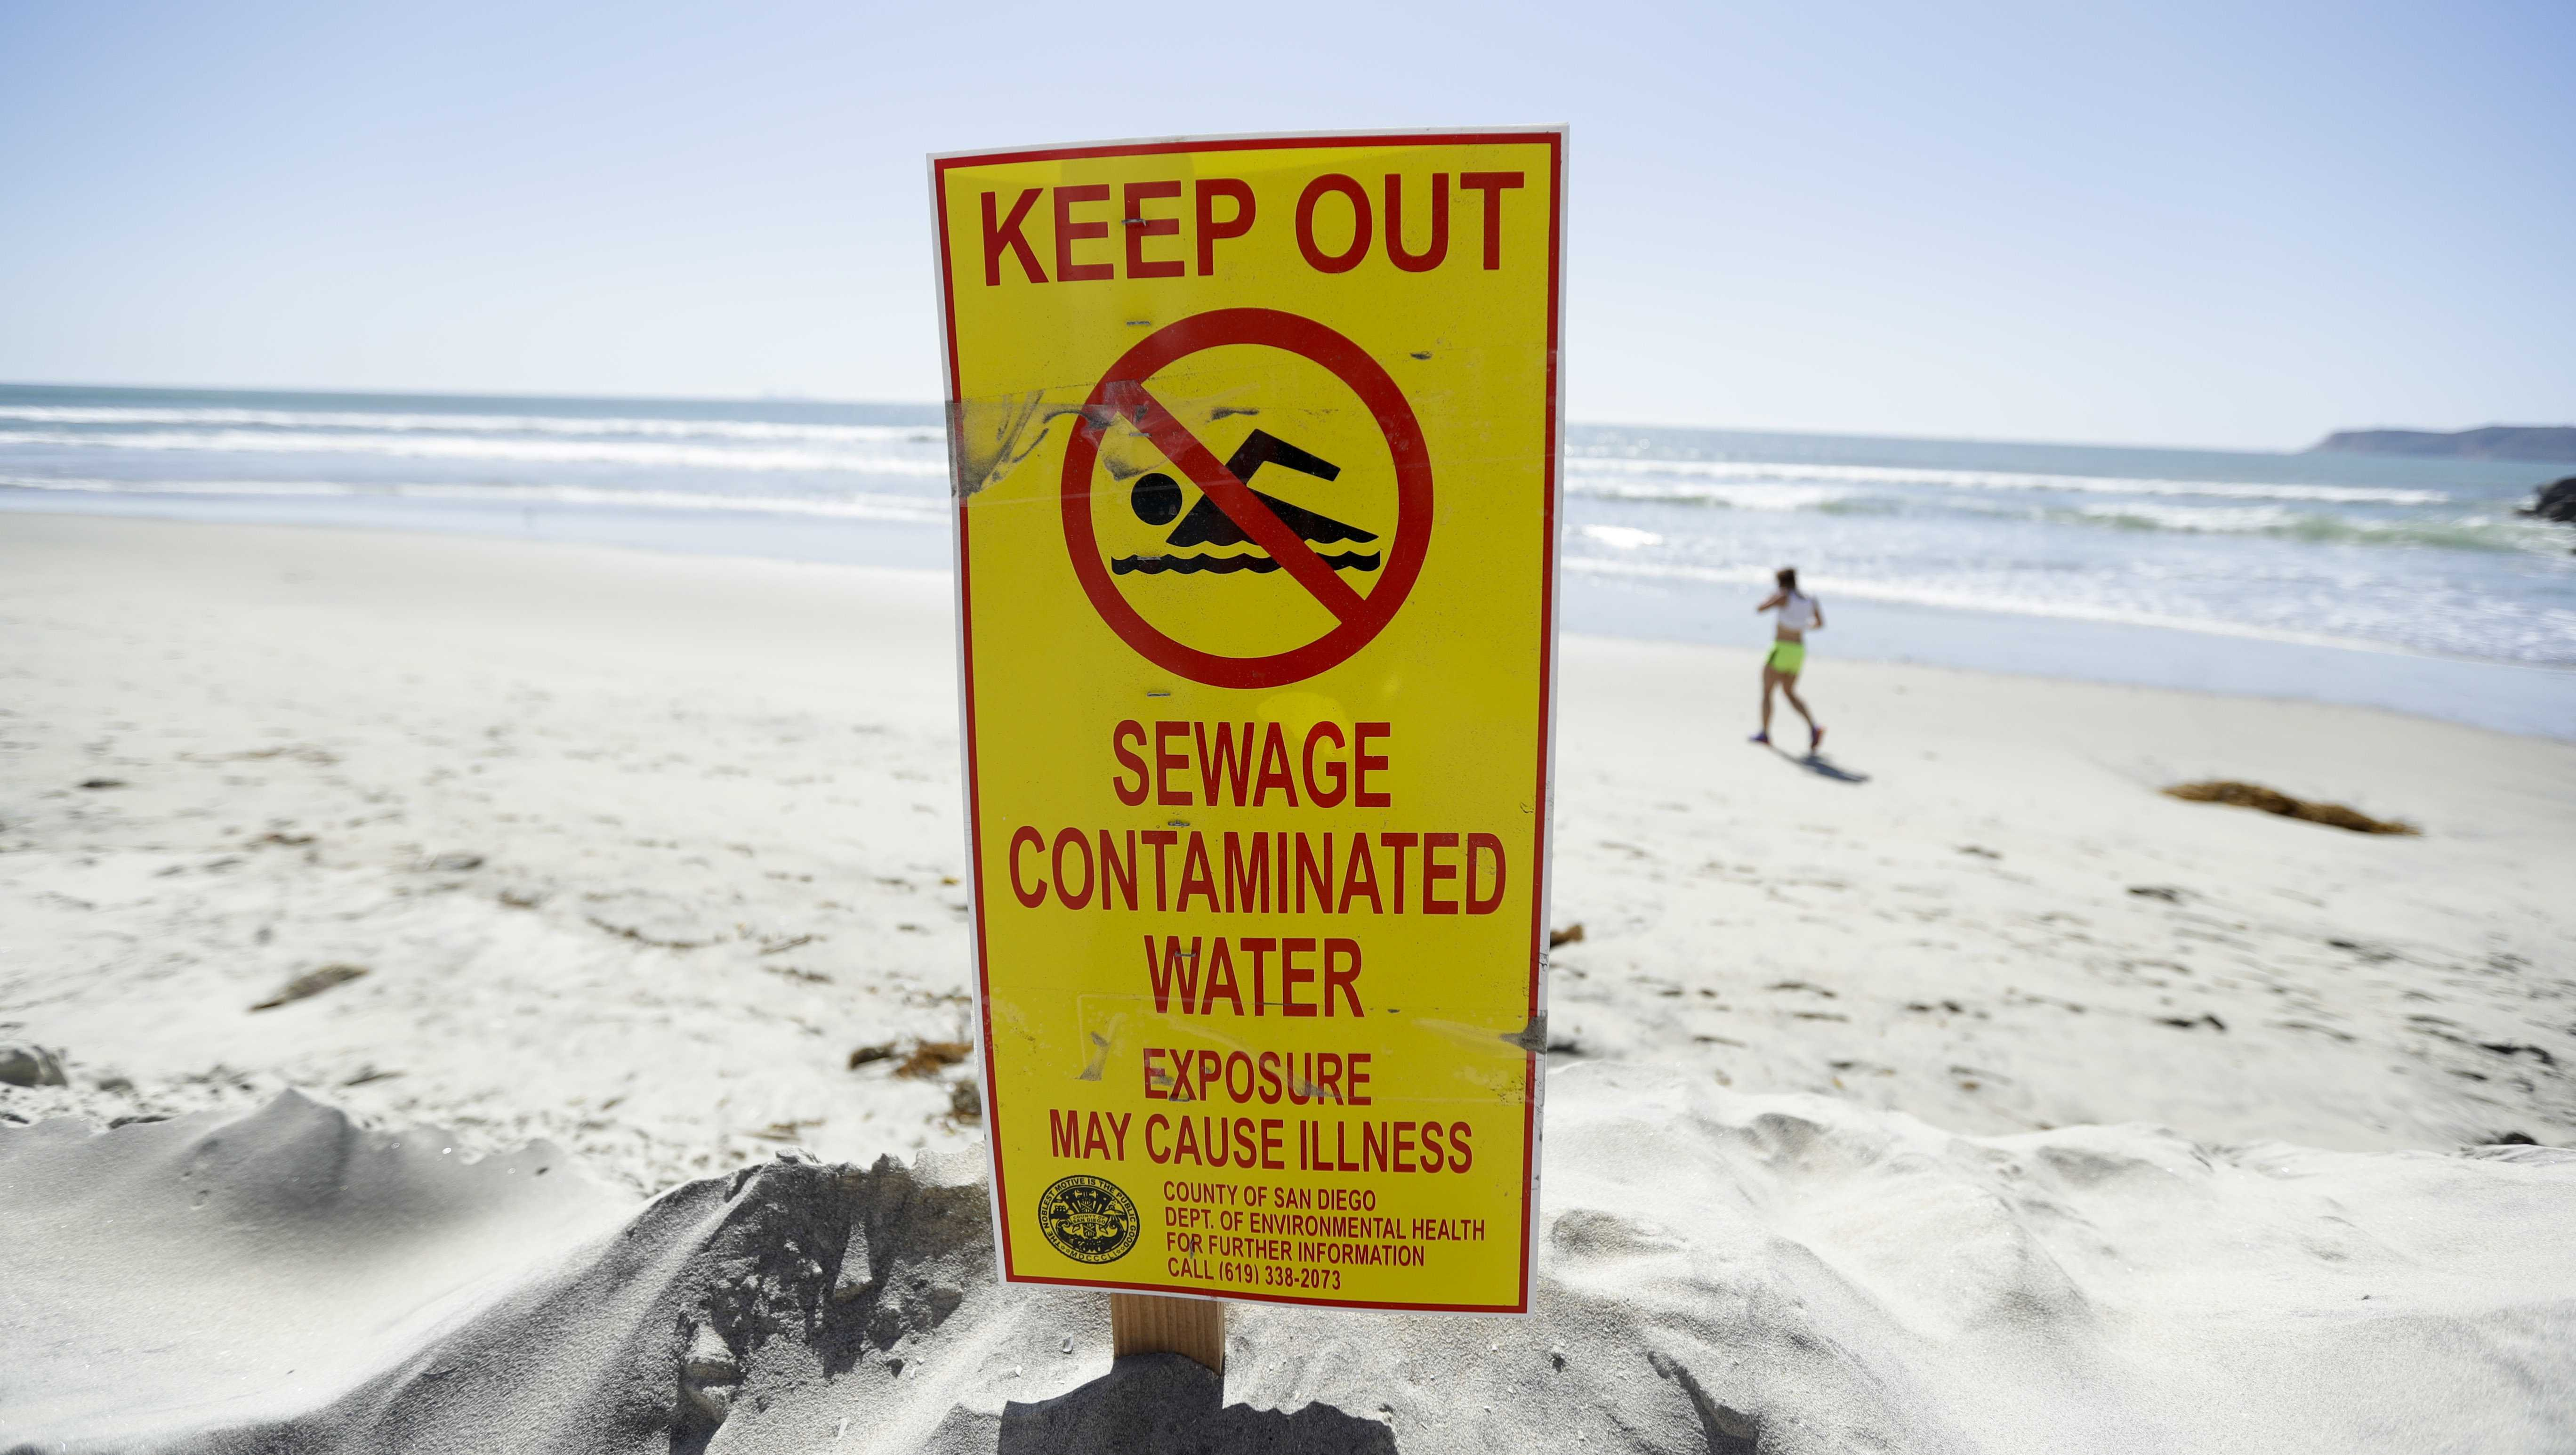 A sign warns of sewage contaminated ocean waters on a beach Wednesday, March 1, 2017, in Coronado, Calif. Coronado and Imperial Beach waters remain closed to swimmers and surfers Wednesday after more than 140 million gallons of raw sewage spilled into the Tijuana River in Mexico and flowed north of the border for weeks in February, according to a report.